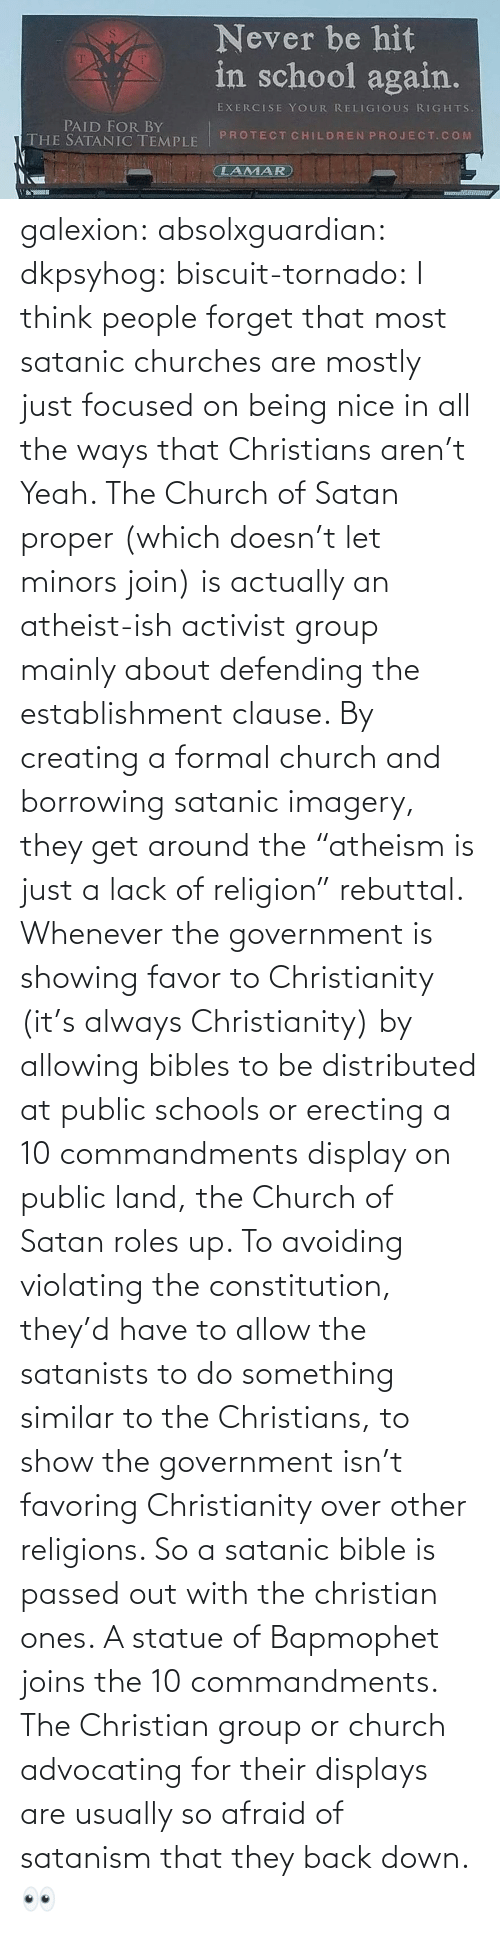 "focused: galexion:  absolxguardian:  dkpsyhog:  biscuit-tornado:     I think people forget that most satanic churches are mostly just focused on being nice in all the ways that Christians aren't  Yeah. The Church of Satan proper (which doesn't let minors join) is actually an atheist-ish activist group mainly about defending the establishment clause. By creating a formal church and borrowing satanic imagery, they get around the ""atheism is just a lack of religion"" rebuttal. Whenever the government is showing favor to Christianity (it's always Christianity) by allowing bibles to be distributed at public schools or erecting a 10 commandments display on public land, the Church of Satan roles up. To avoiding violating the constitution, they'd have to allow the satanists to do something similar to the Christians, to show the government isn't favoring Christianity over other religions. So a satanic bible is passed out with the christian ones. A statue of Bapmophet joins the 10 commandments. The Christian group or church advocating for their displays are usually so afraid of satanism that they back down.   👀"